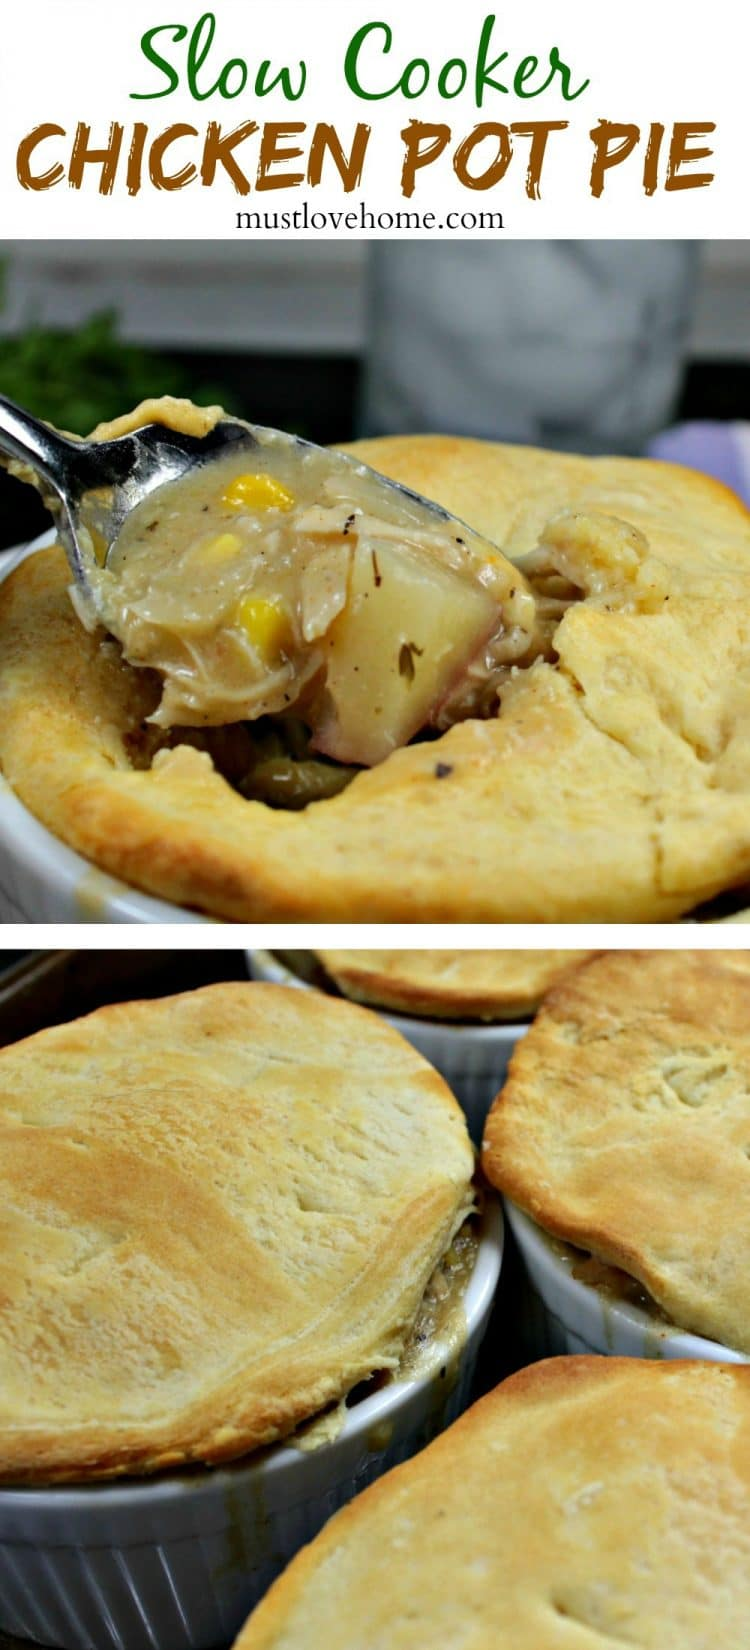 Slow Cooker Chicken Pot Pie is chicken and vegetables, smothered with a savory homemade gravy, topped with a crisp,flaky crust, No cream of chicken soup is used!